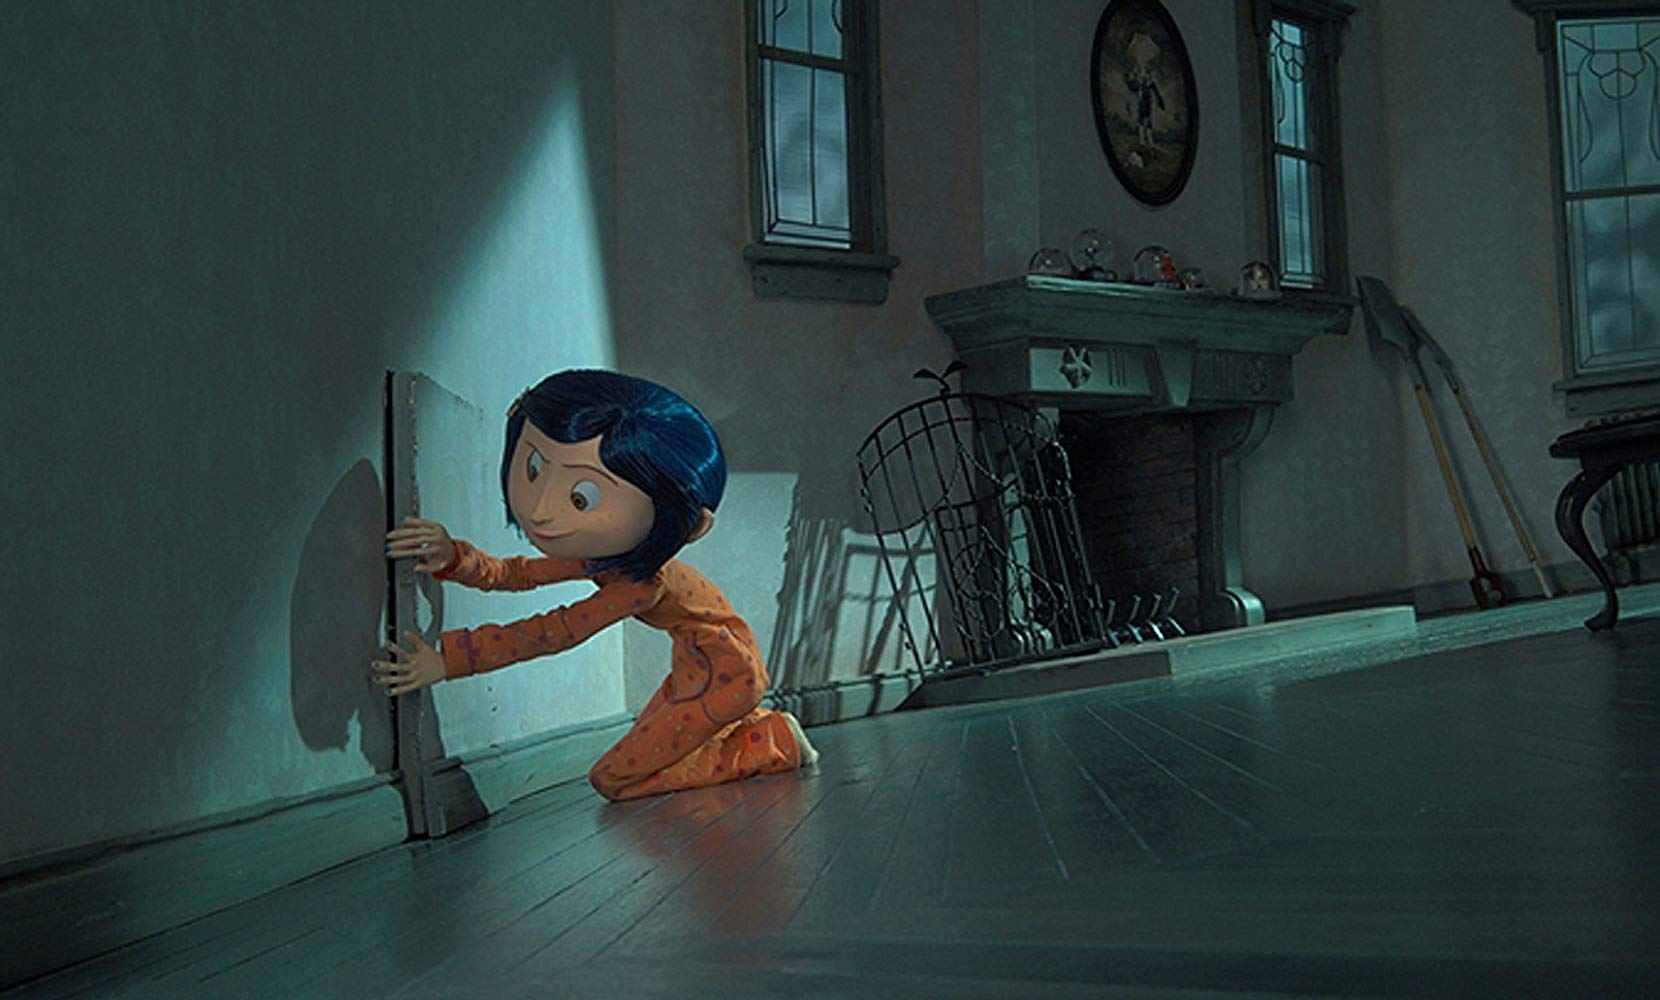 Coraline finds a mysterious door in the wall in Coraline (2009)